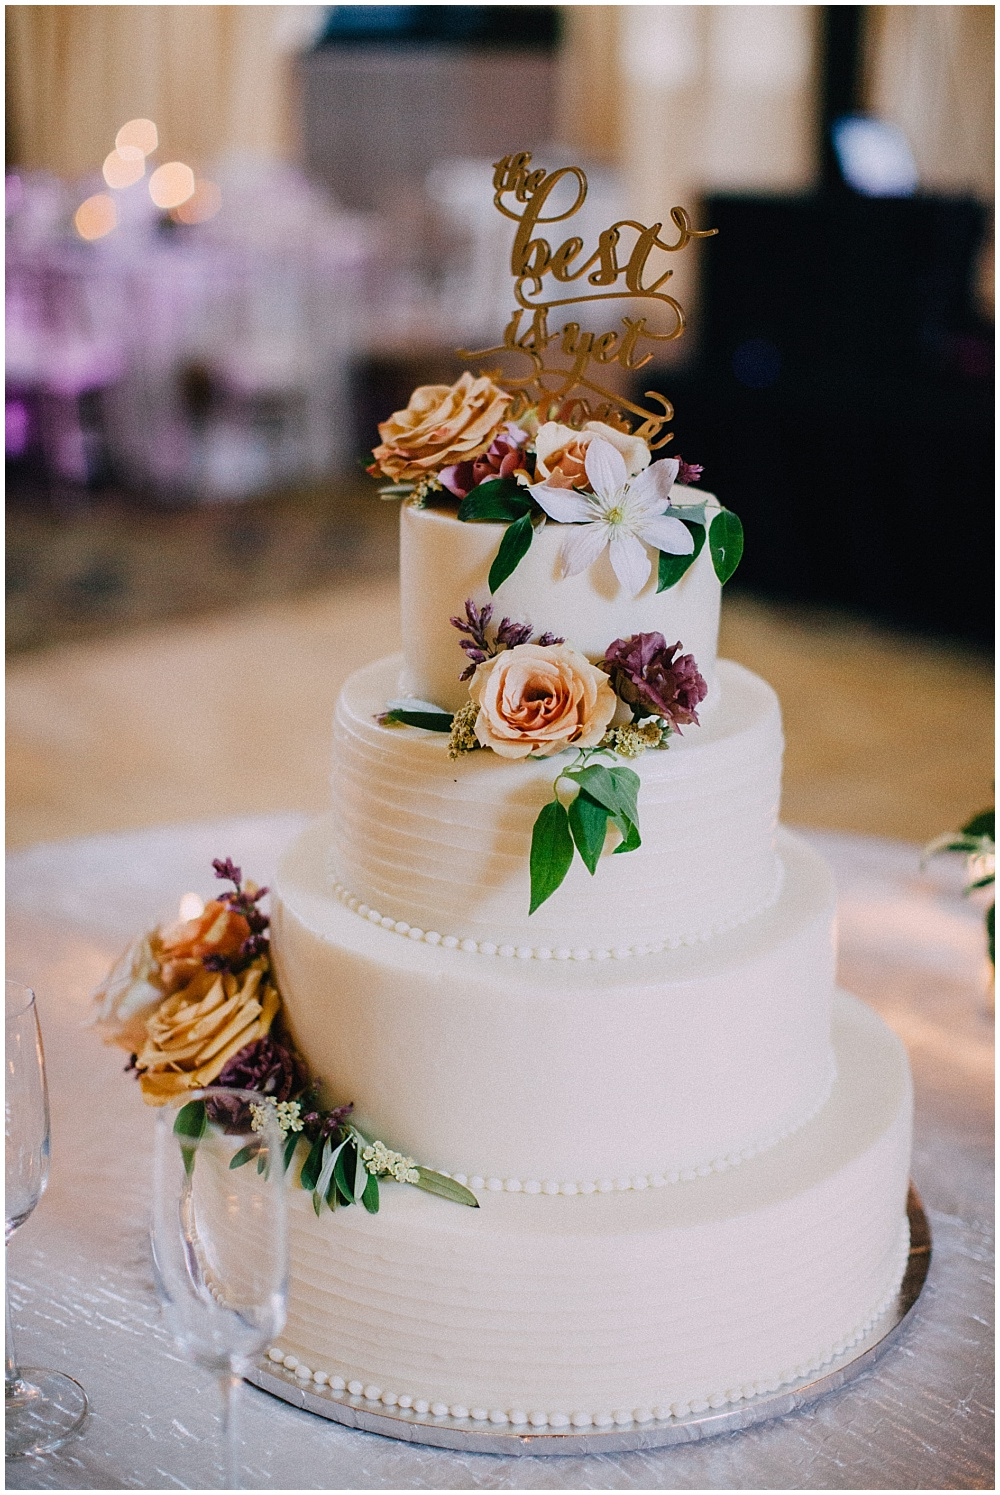 Gold 'The Best is Yet to Come' cake topper | Downtown Indianapolis Wedding by Caroline Grace Photography & Jessica Dum Wedding Coordination